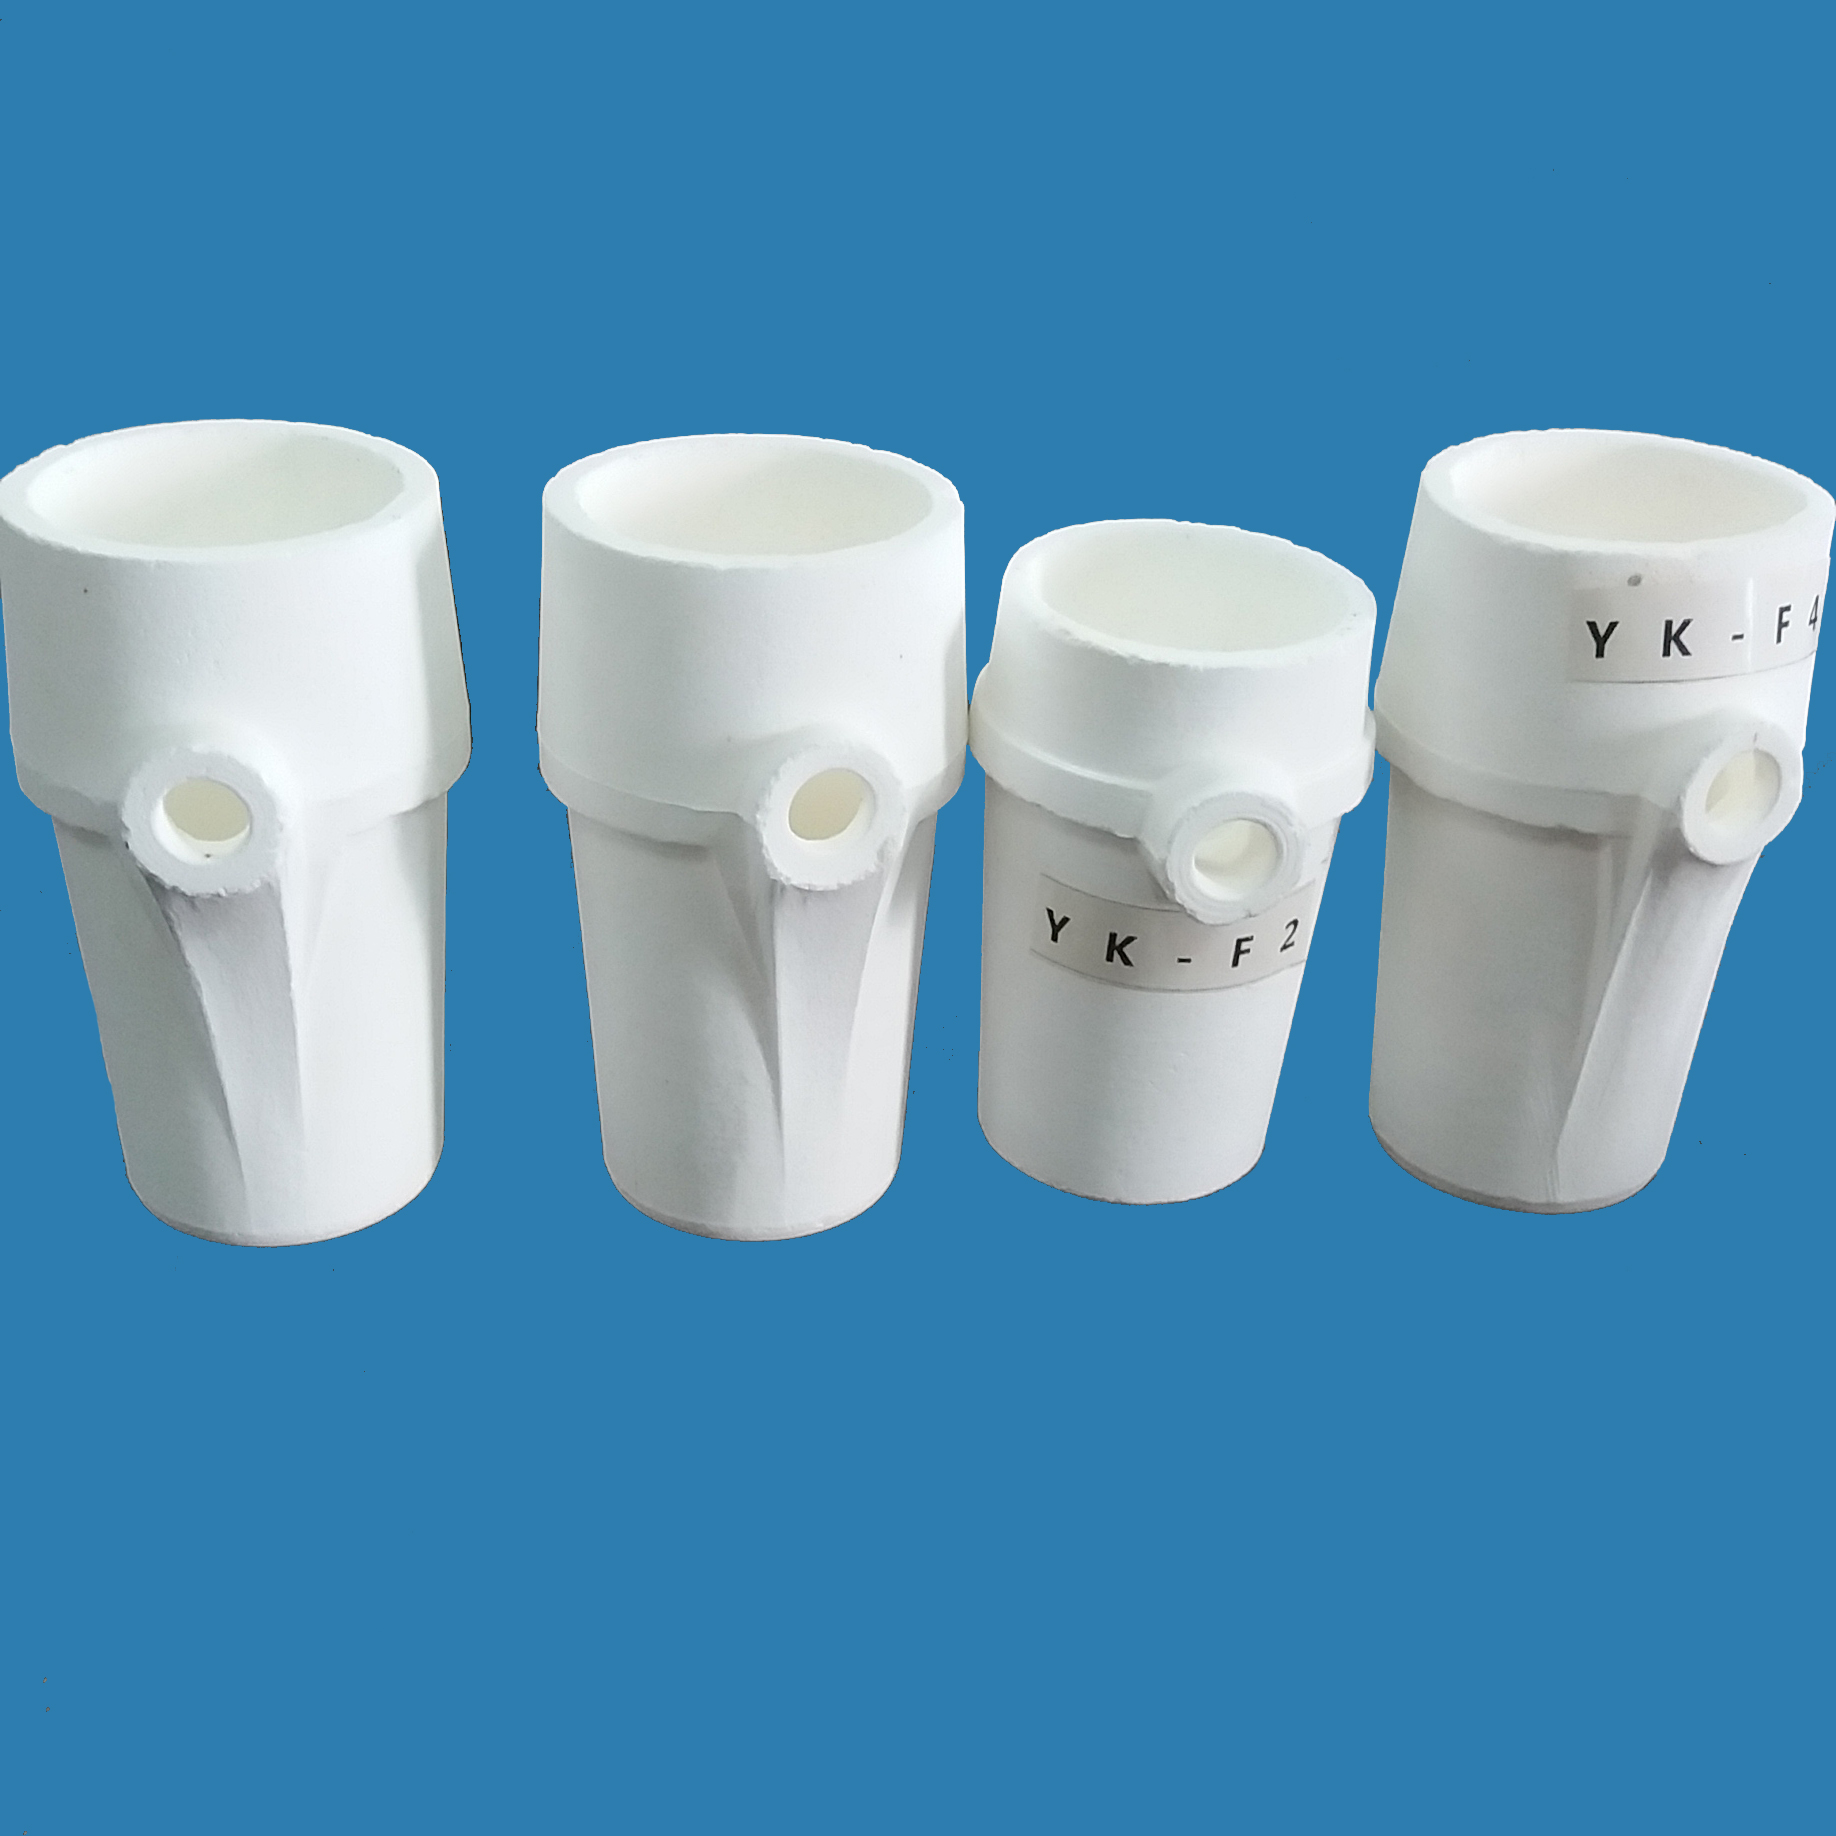 dental lab small crucible yk-F series